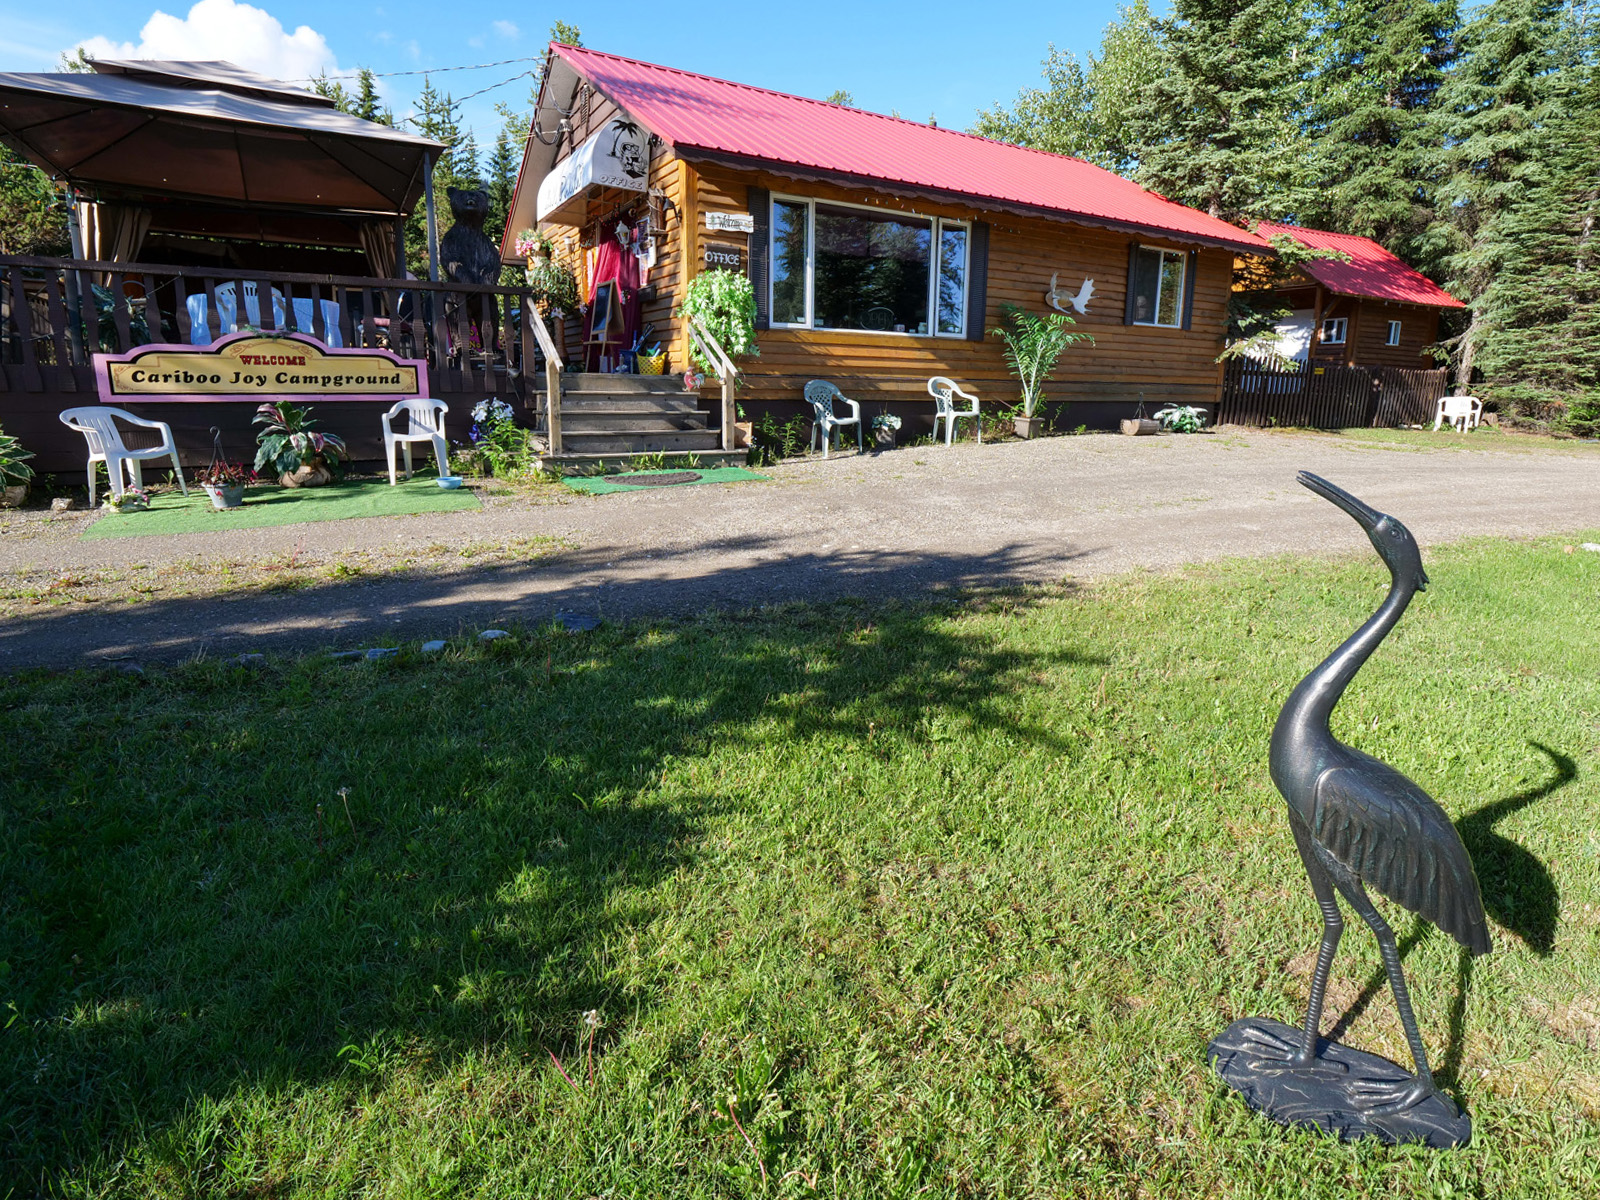 Cariboo joy rv park 07